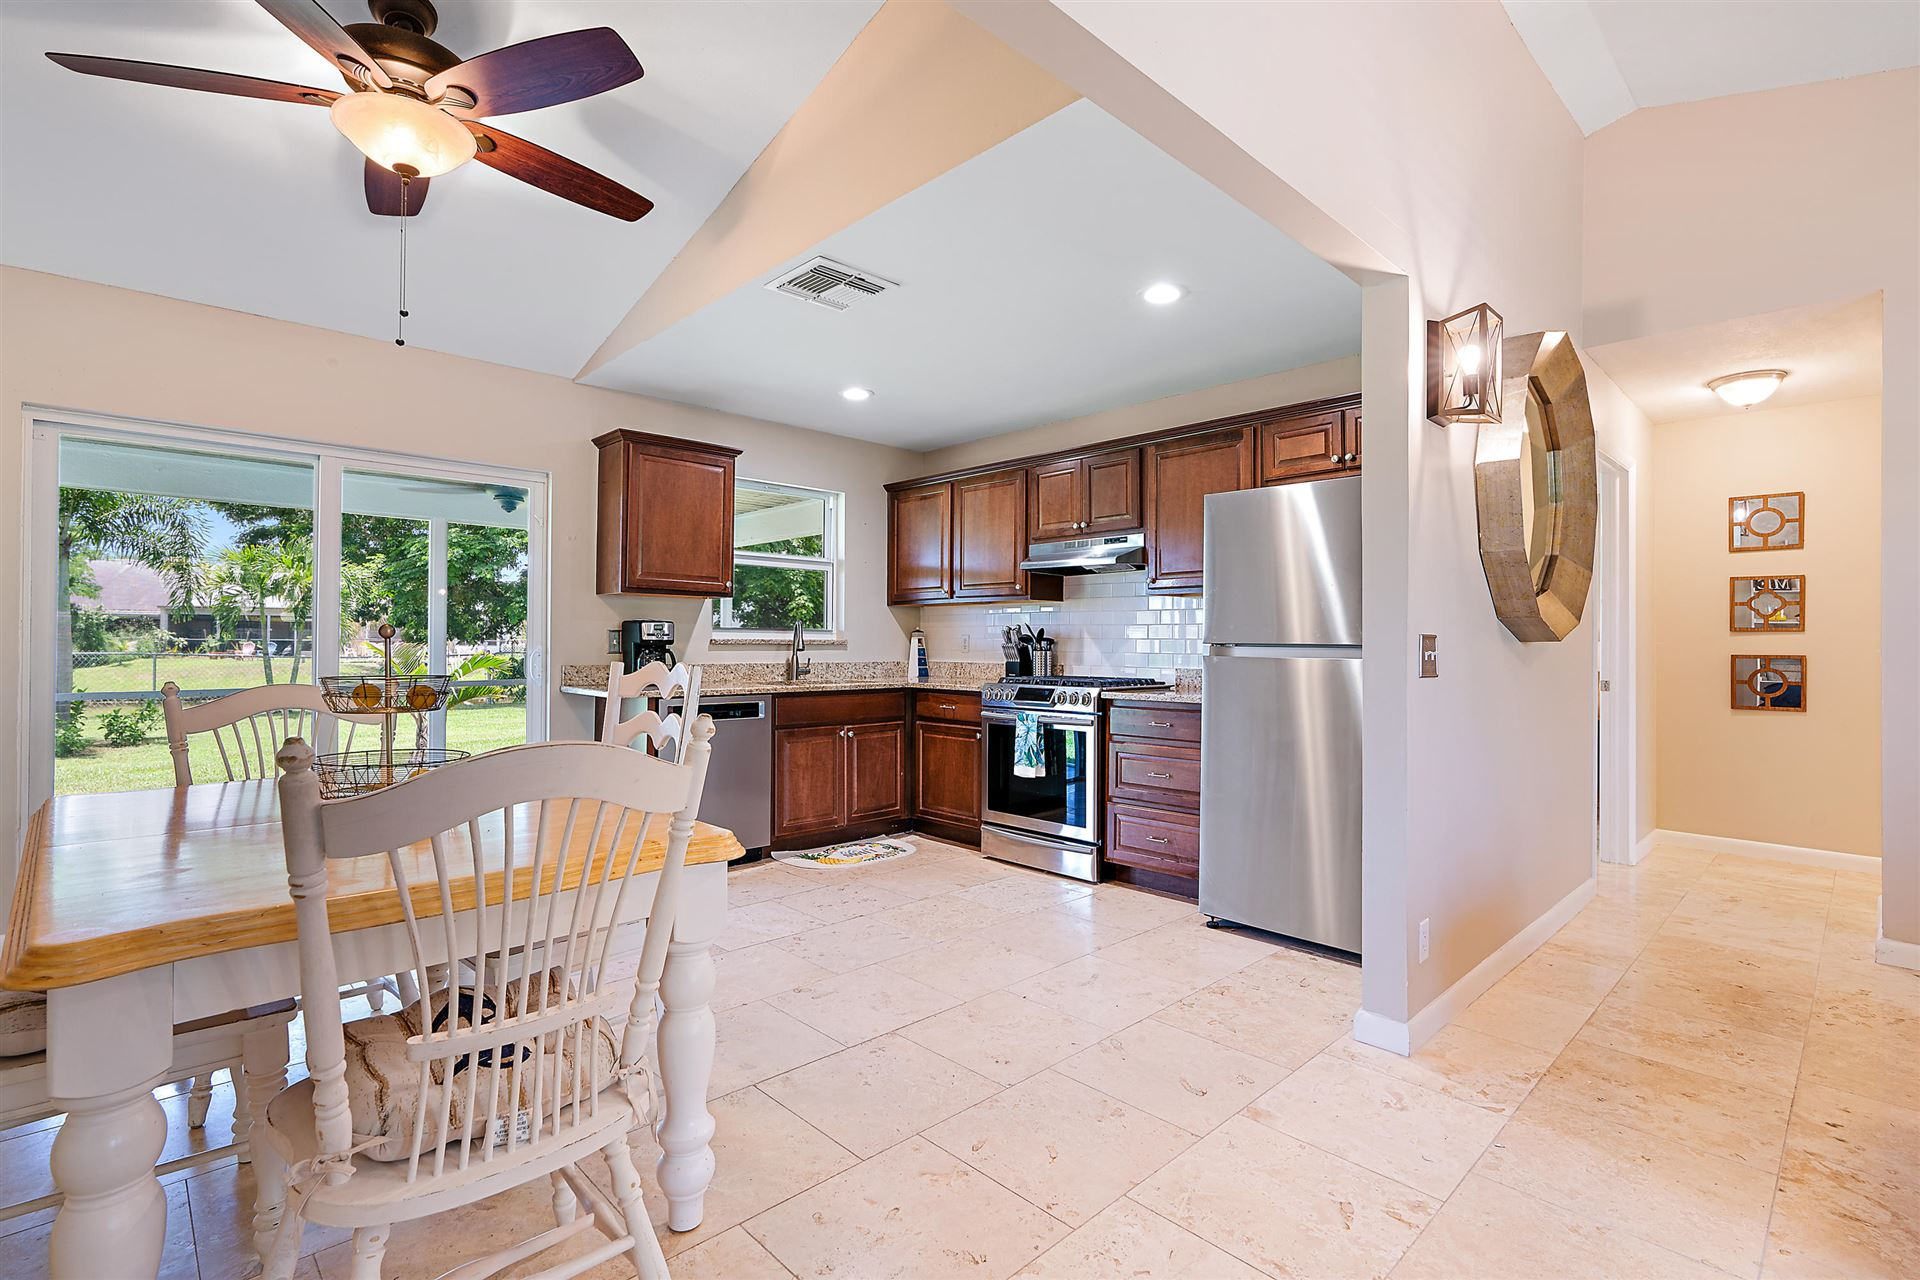 Photo of 139 Lakeside Drive, Jupiter, FL 33458 (MLS # RX-10715367)